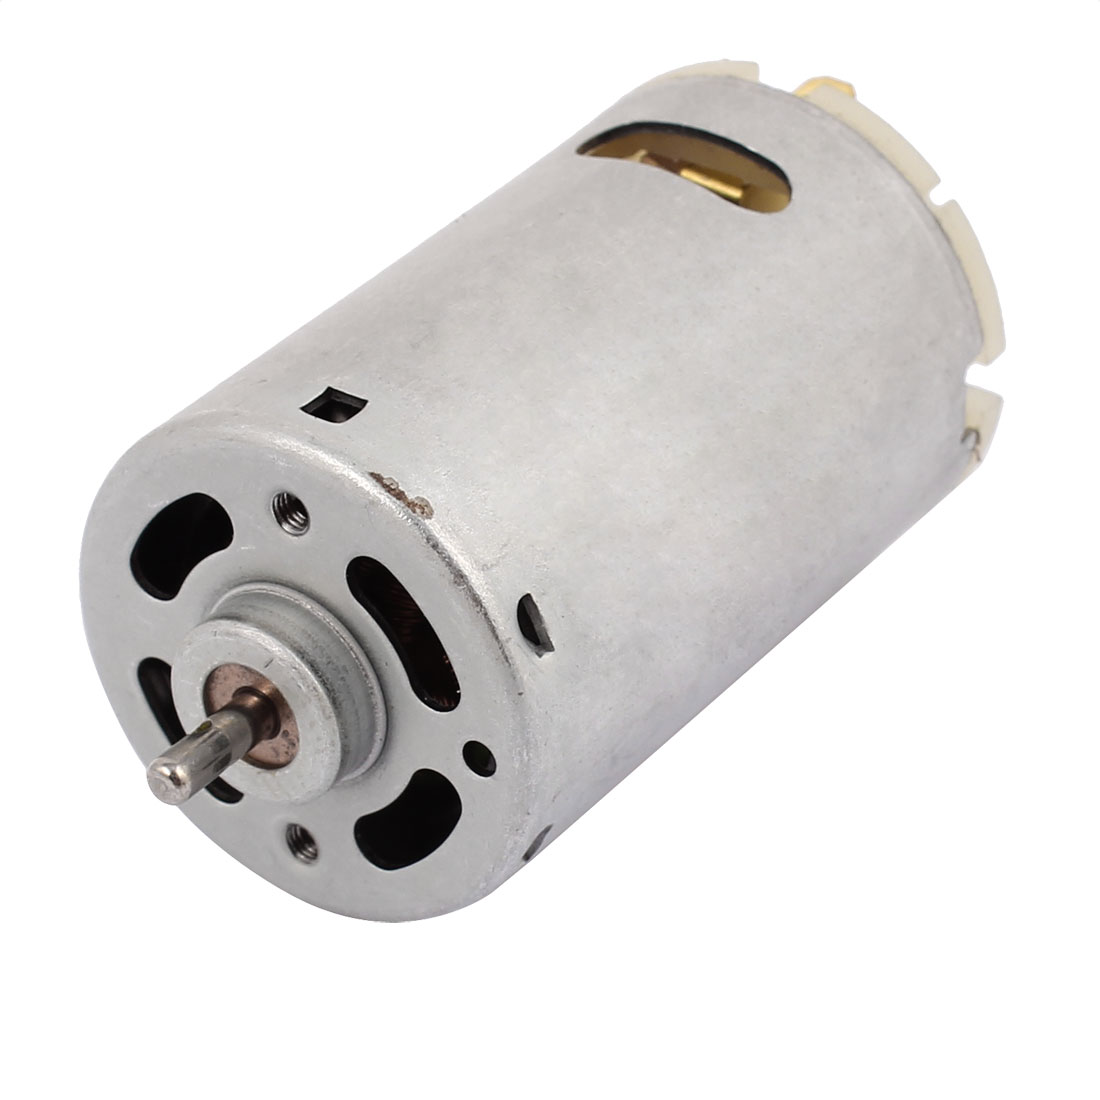 DC 7-12V 18000RPM Large Torque Strong Magnet Micro DC Motor for Electric Massage